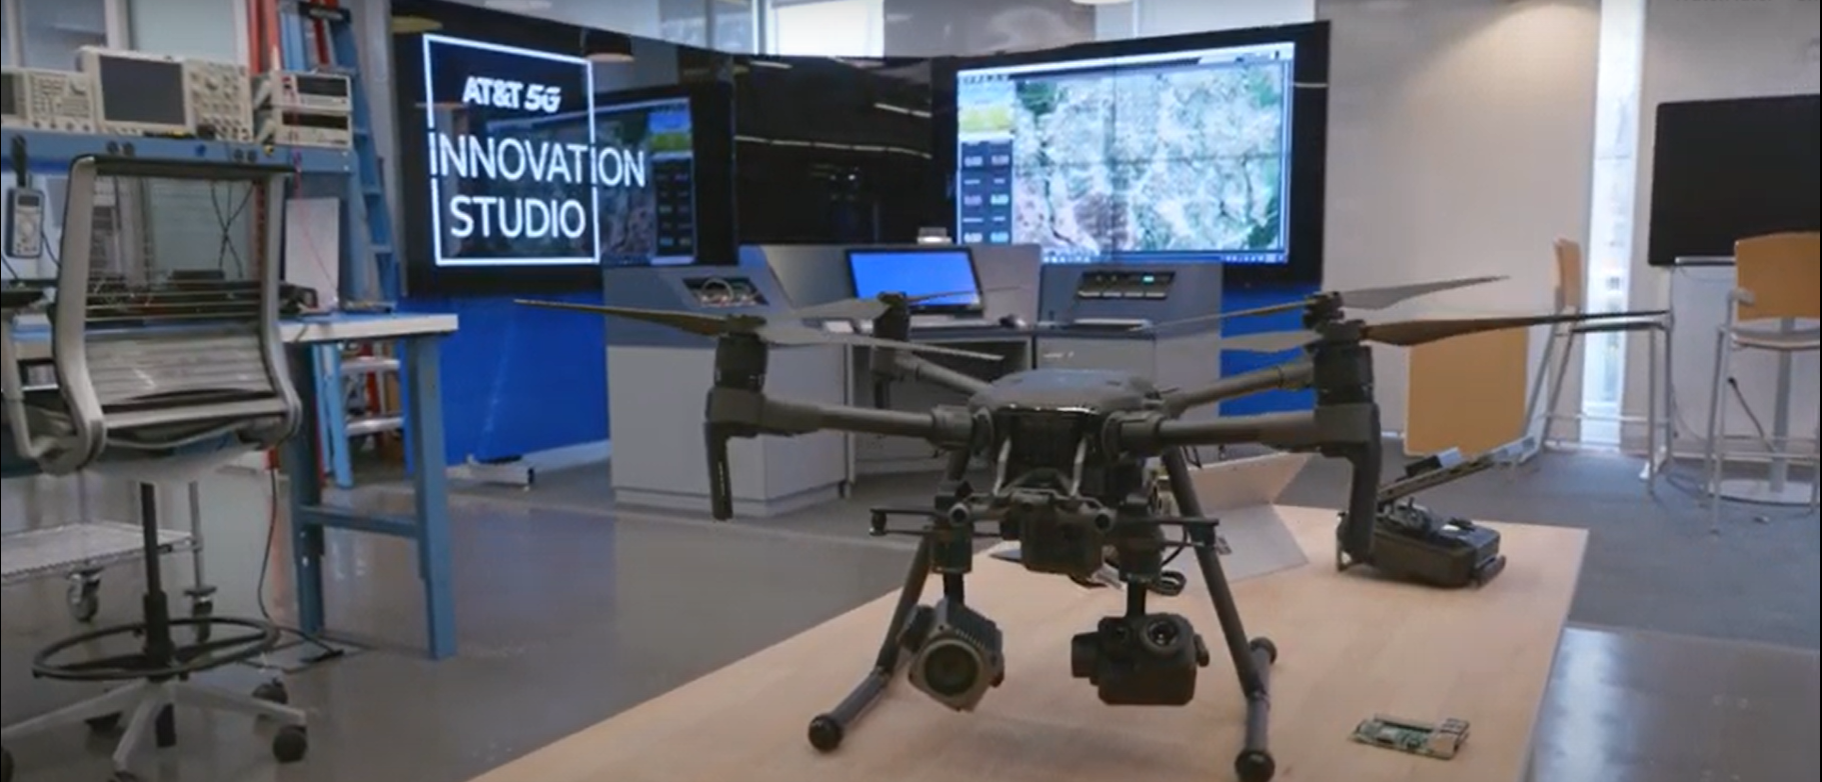 AT&T launches 5G Innovation Studio with Ericsson, Nokia